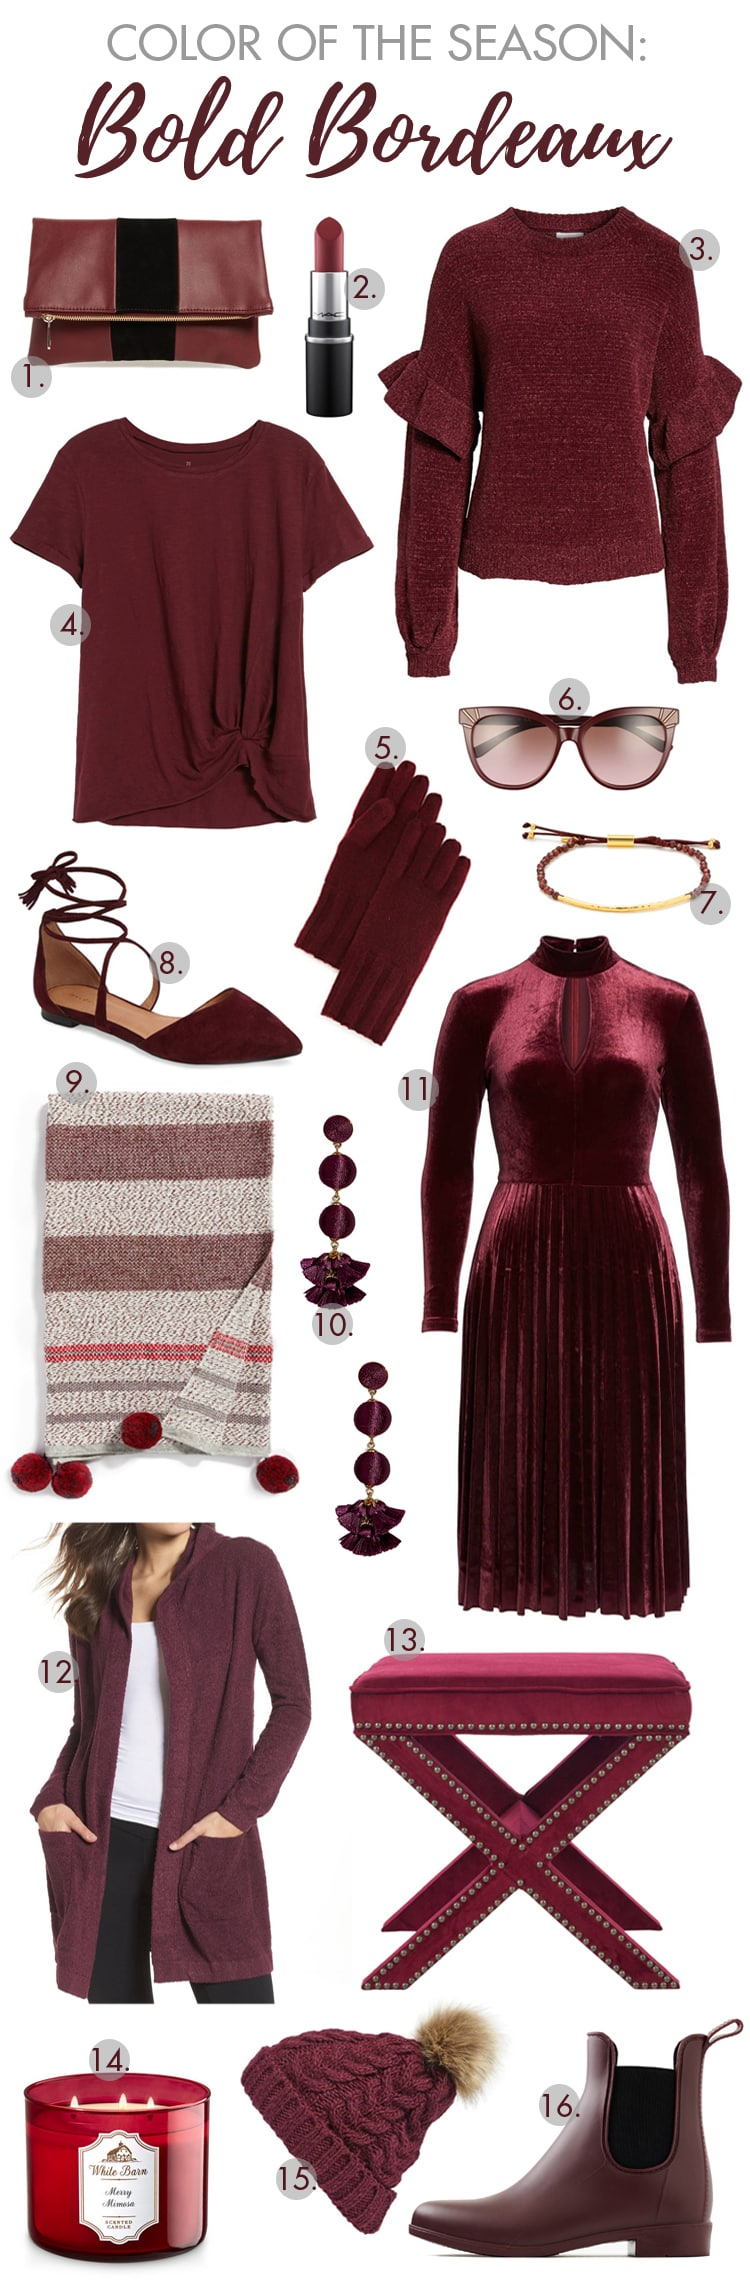 Snag our favorite items from this year's seasonal color crush Bordeaux! #bordeaux #burgundy #falldecor #falloutfit